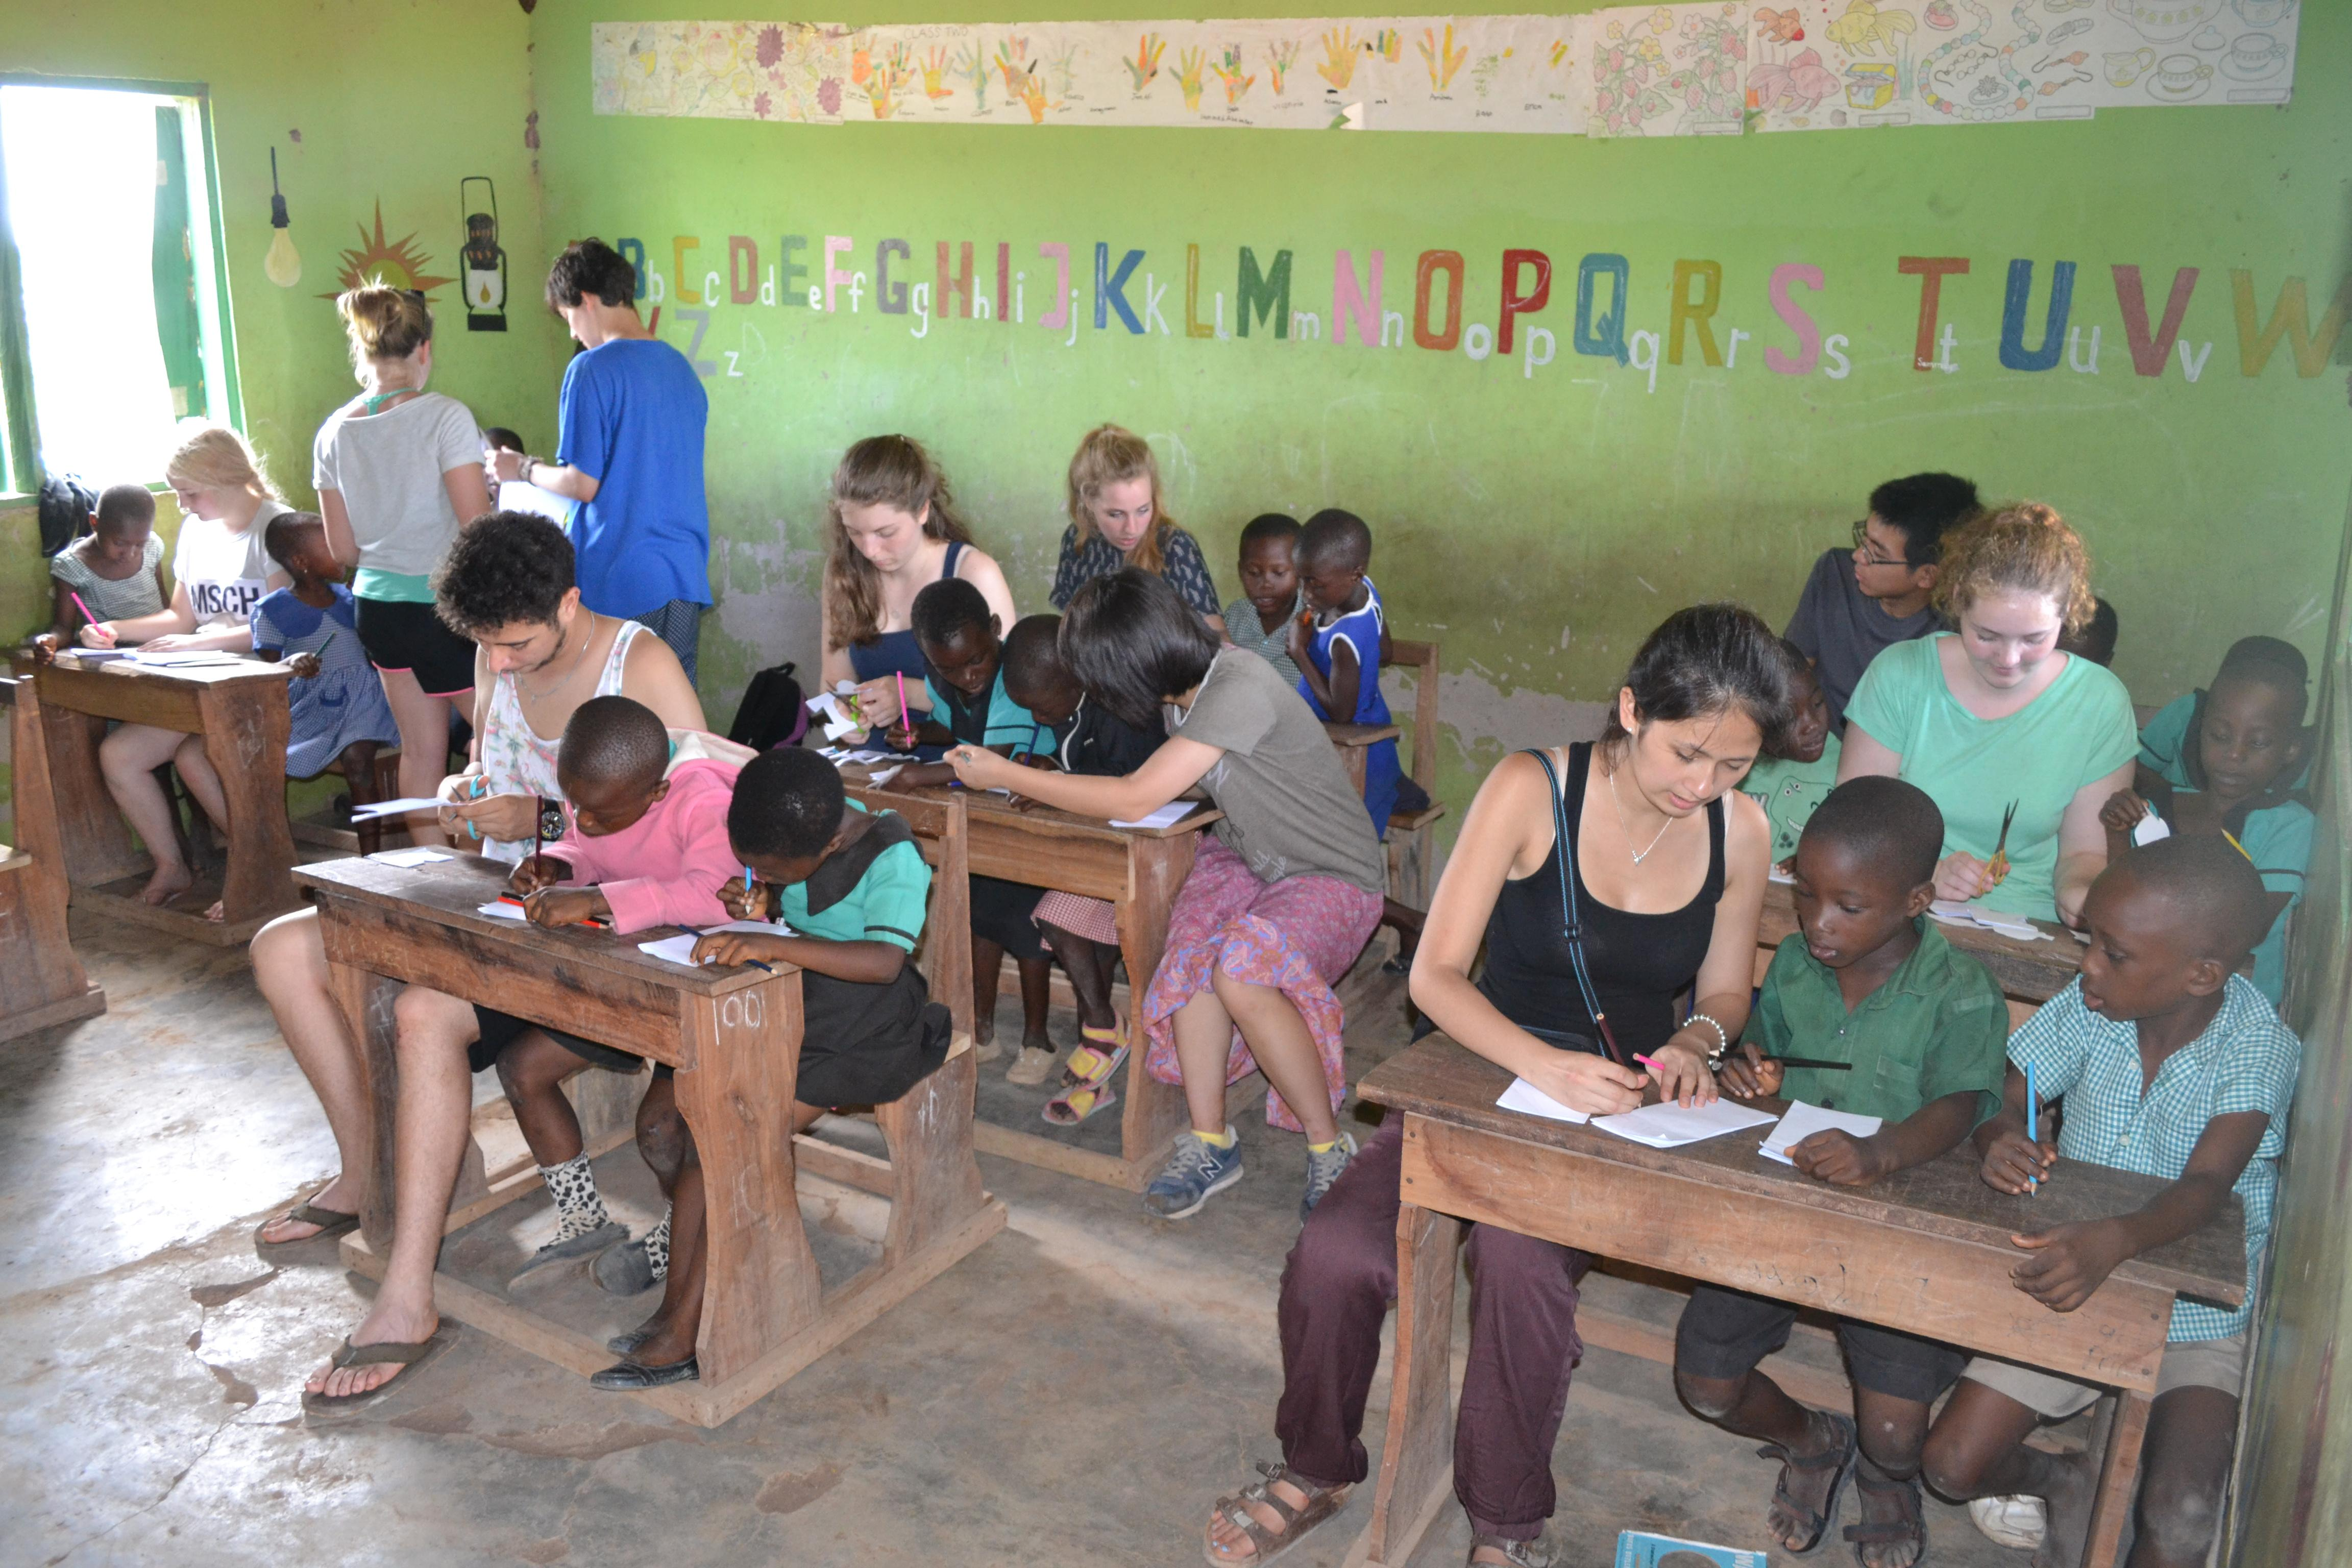 Projects Abroad volunteers help kindergarten children in Ghana with crafts activities at a local school.